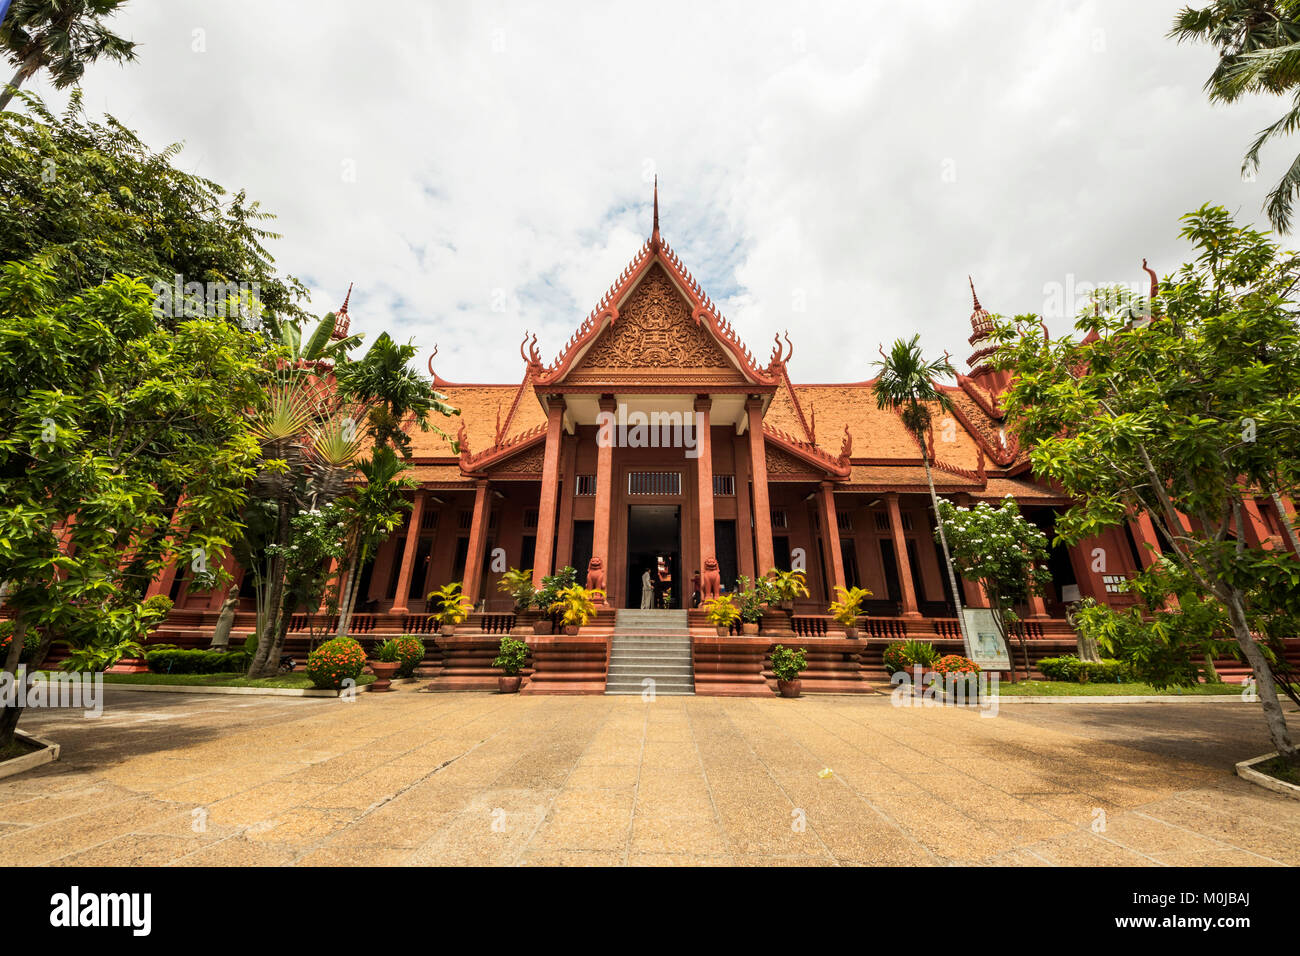 National Museum of Arts; Phnom Penh, Cambodia - Stock Image